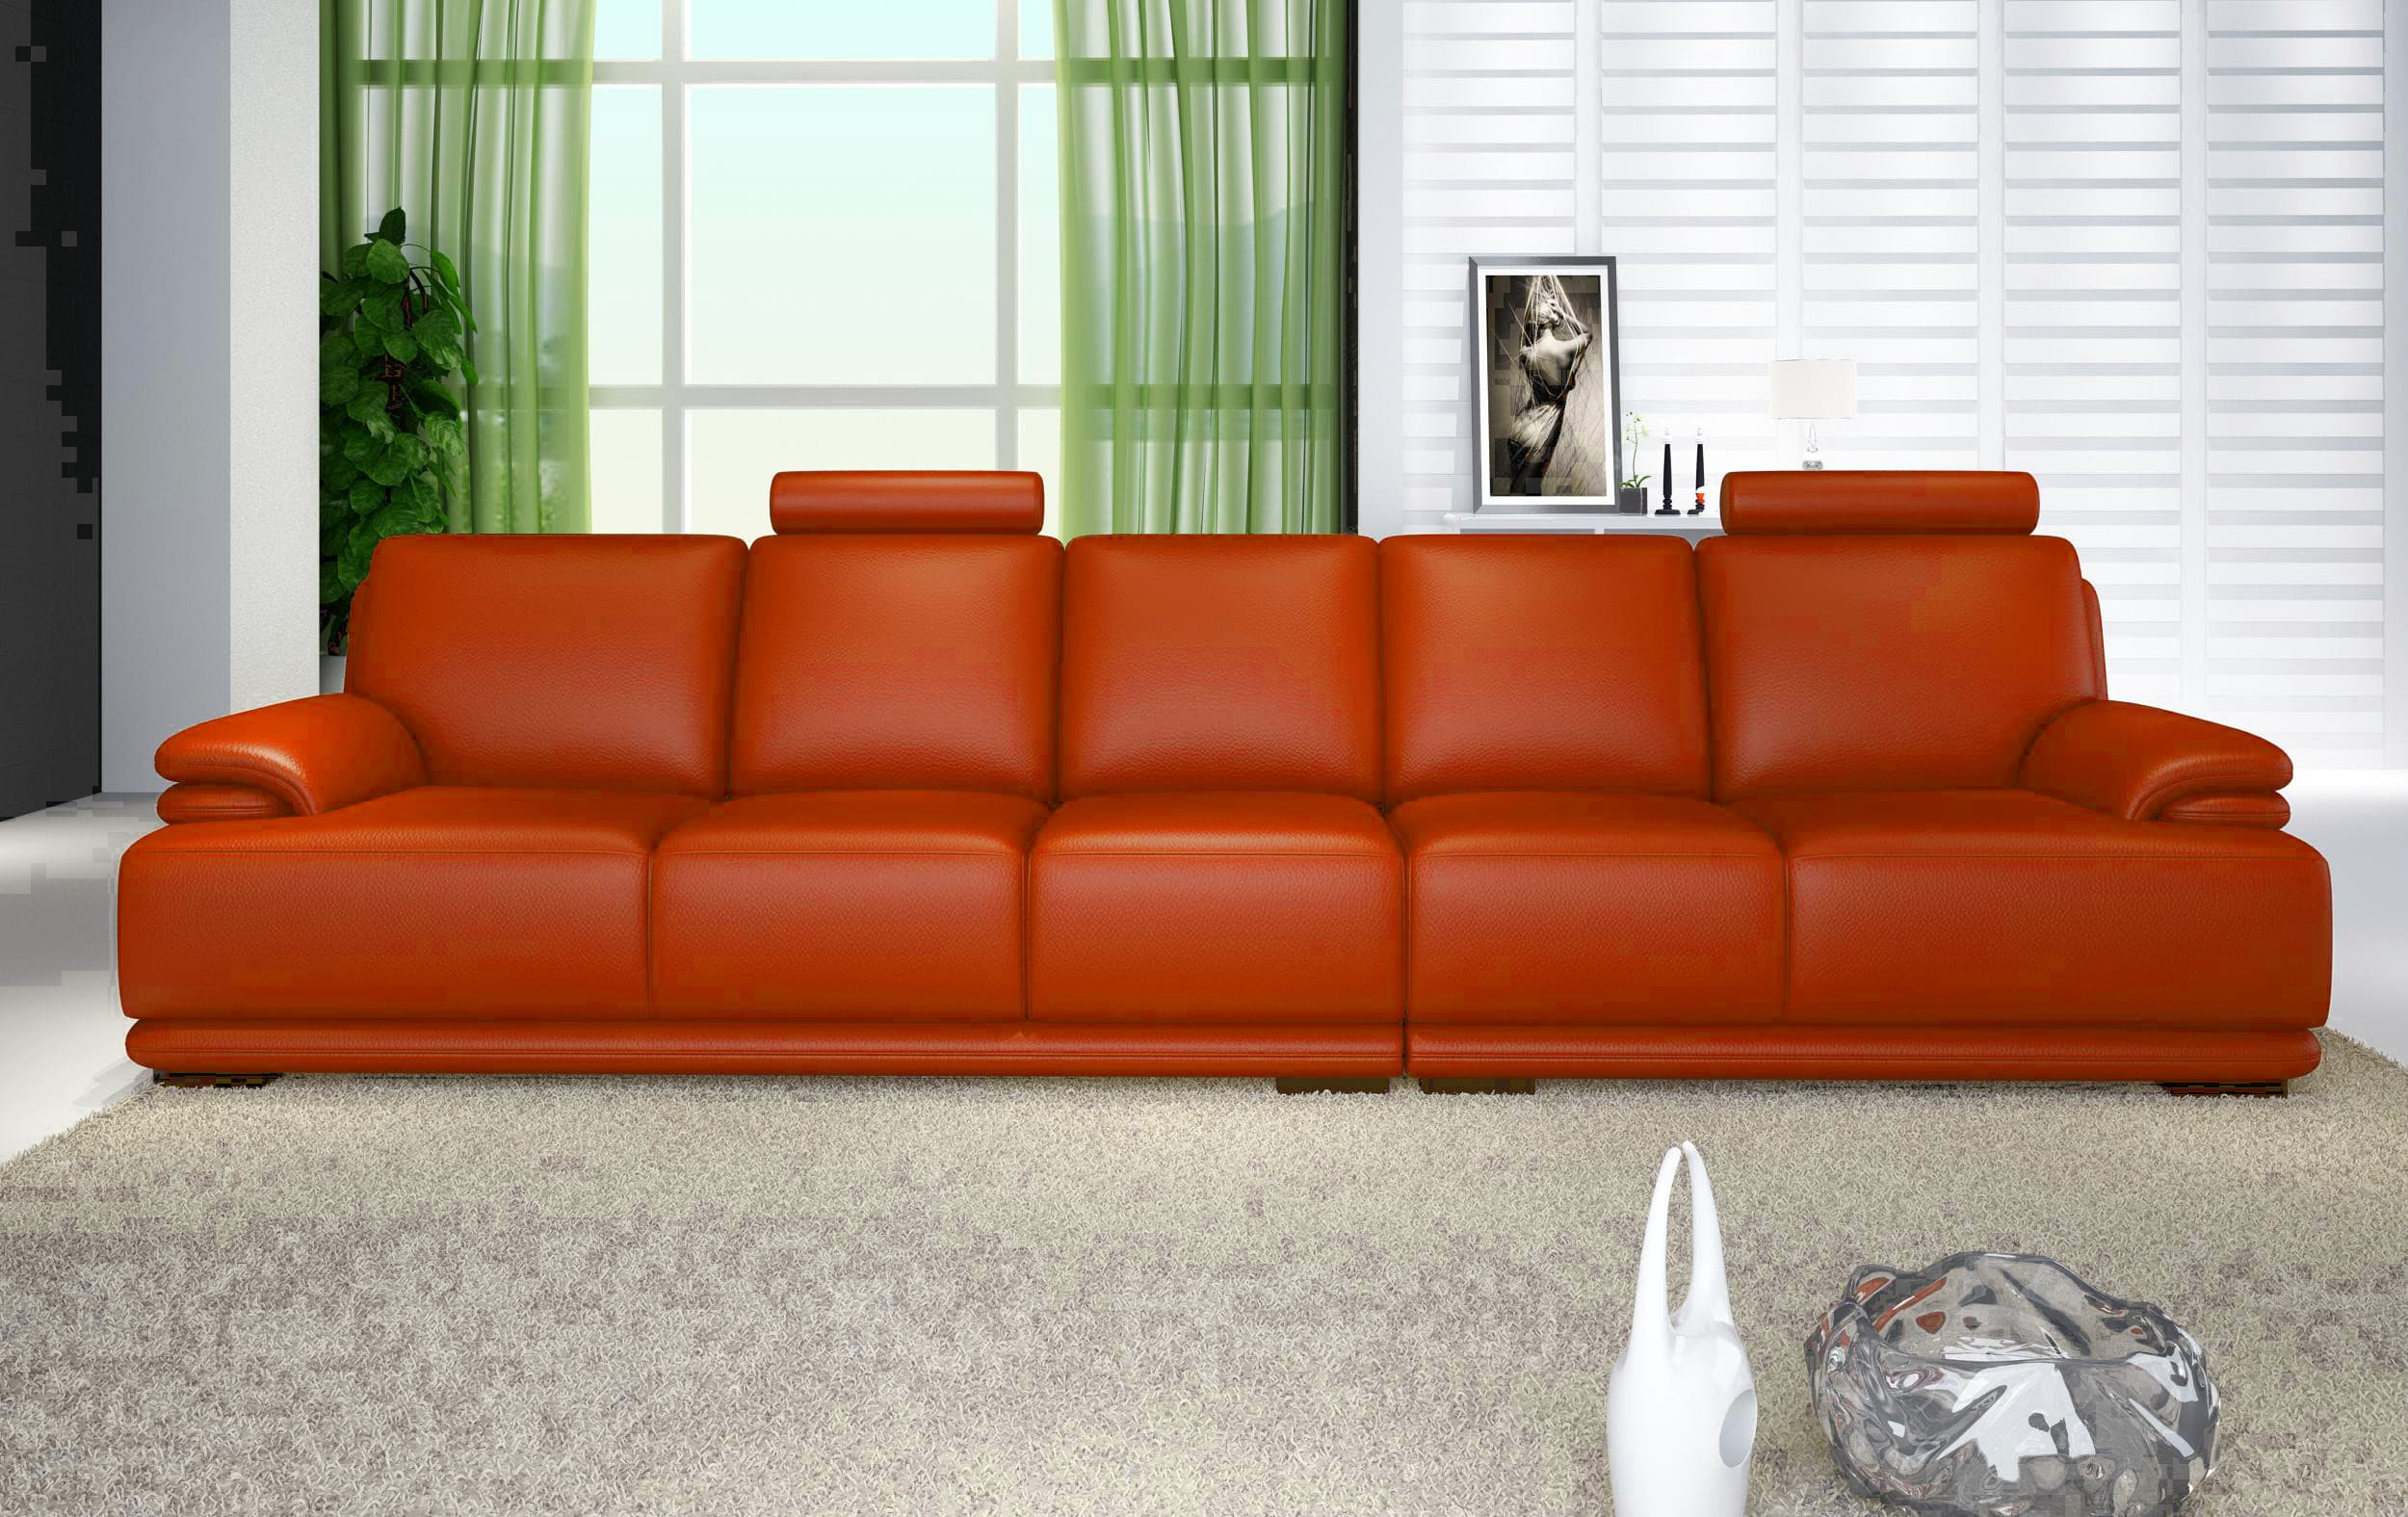 Canape droit cuir salon london orange canape cuir - Canape 5 places droit ...